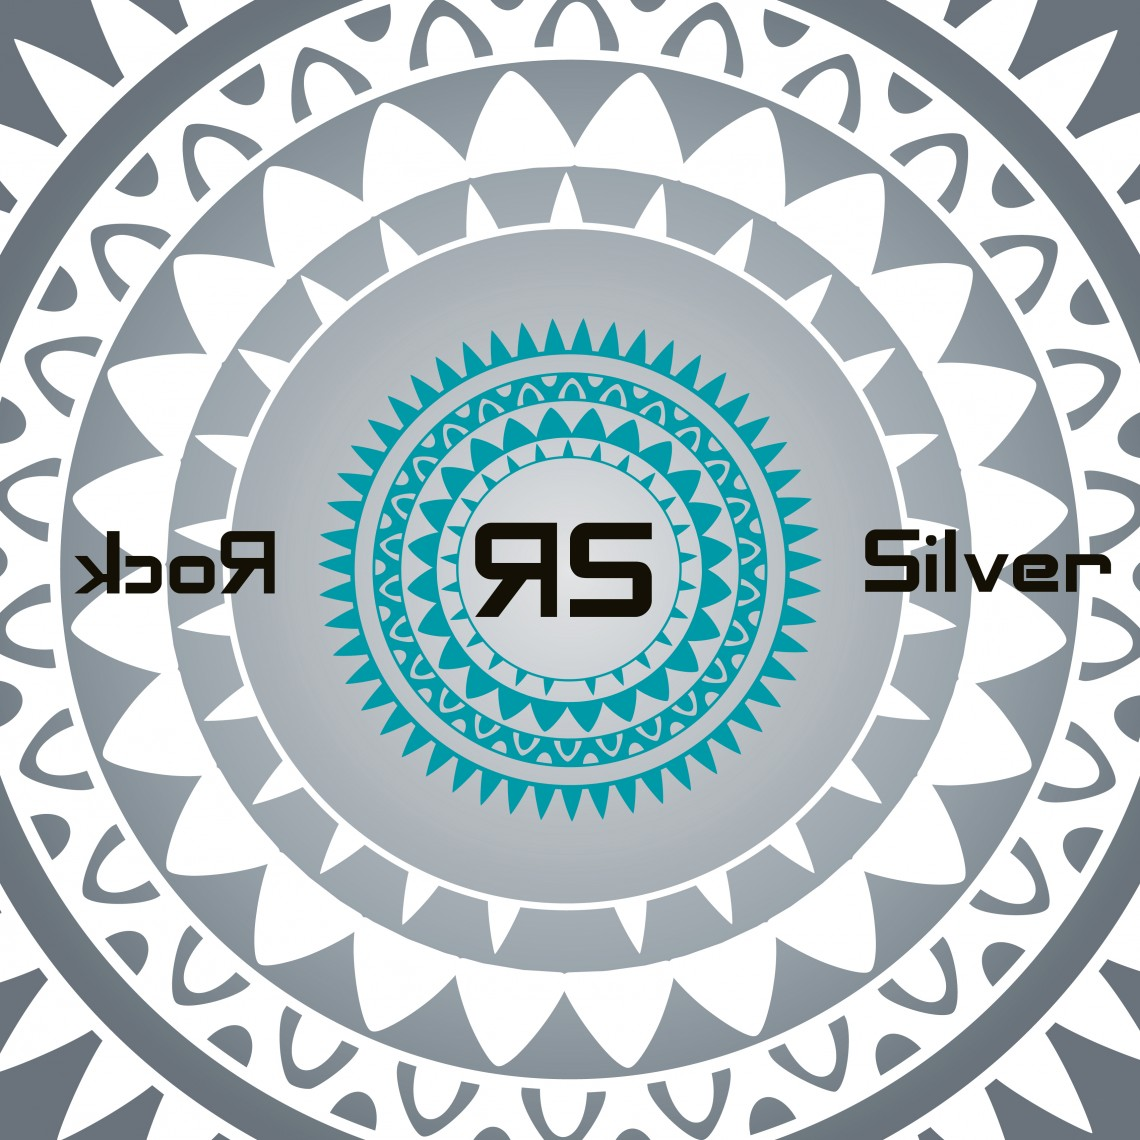 Rock & Silver® – Flower Power